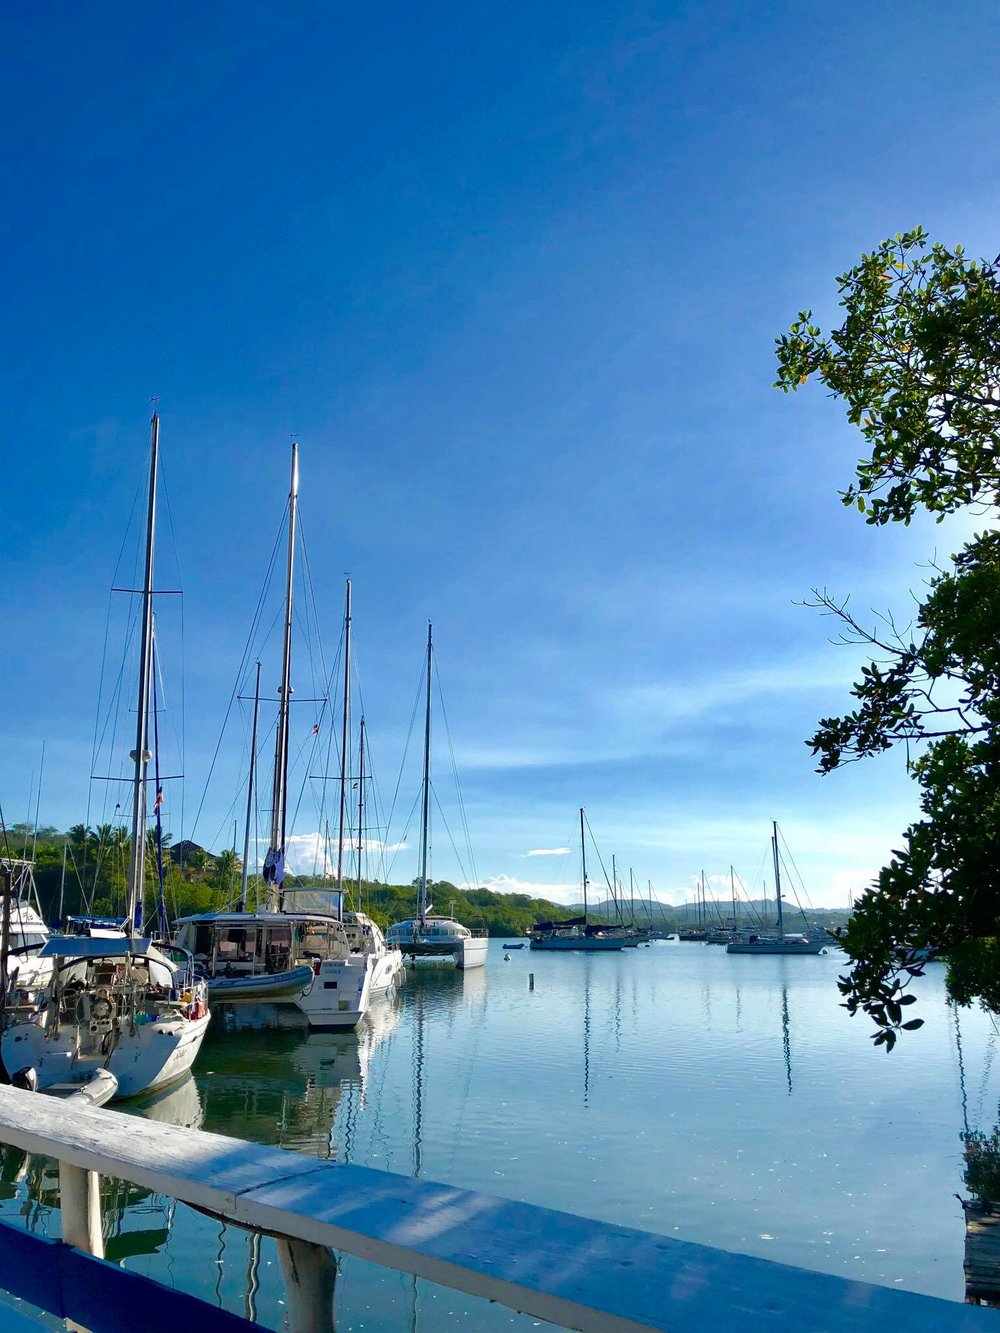 Liveaboard Life Day 247: Sunday Motorbike Trip in Luperon 🏍